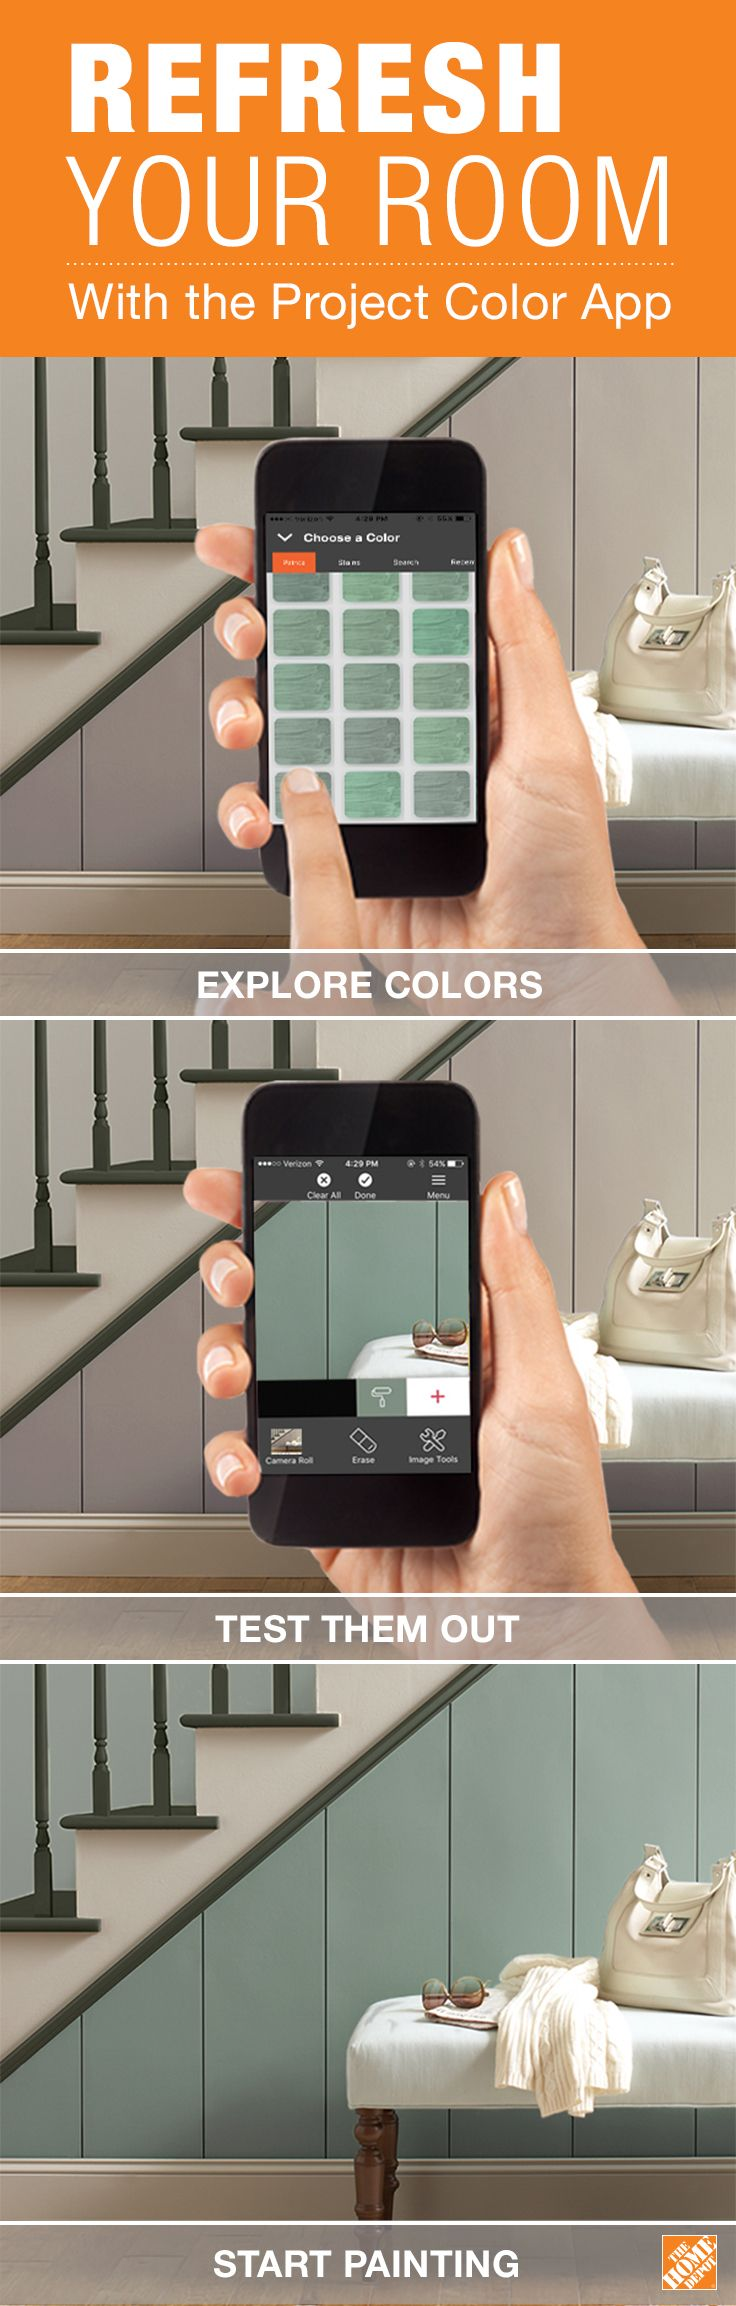 Search Project Color By The Home Depot On Your Iphone Or Android